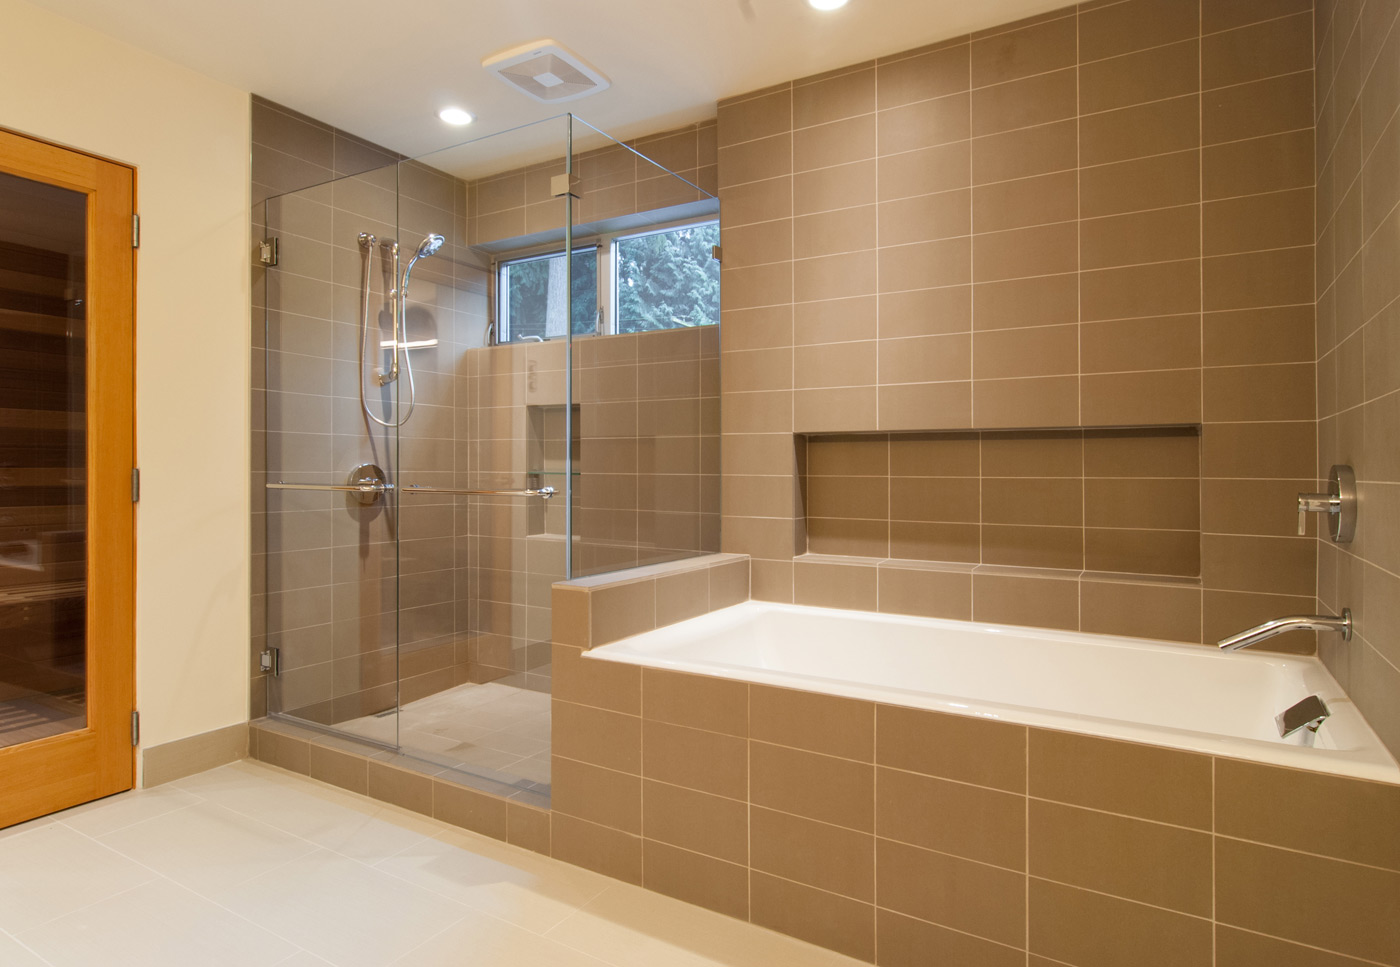 Lessons in tile build blog for Tiled bathroom designs pictures